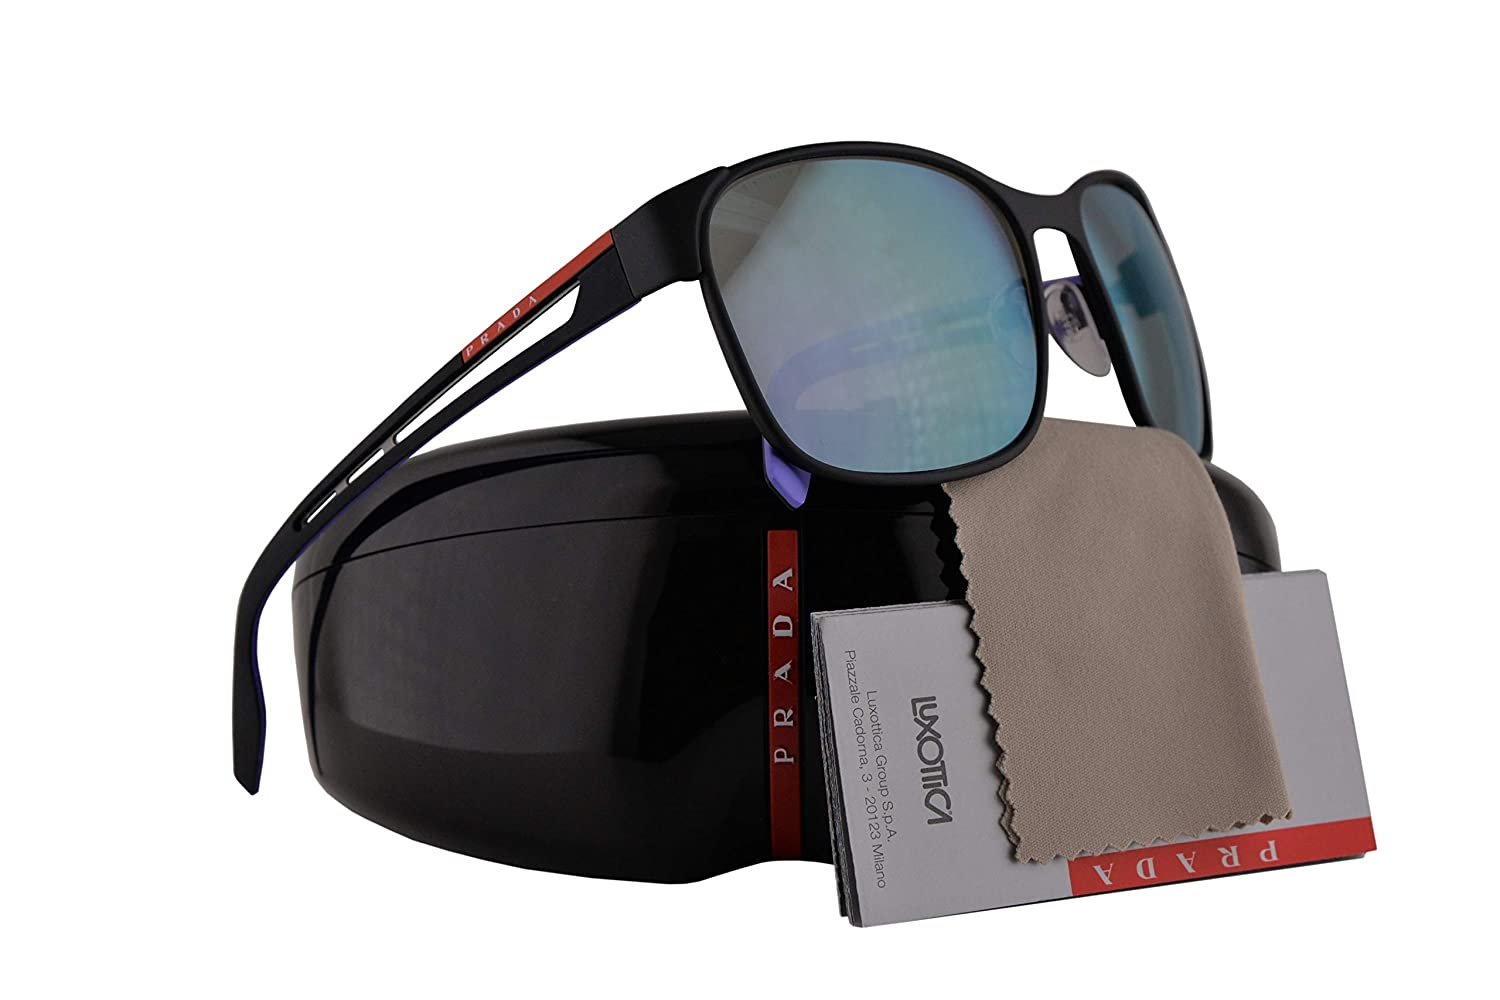 7e12a047110d Amazon.com  Prada PS52TS Sunglasses Black Rubber w Grey Gradient Lens 59mm  DG0140 SPS52T PS 52TS SPS 52T  Clothing